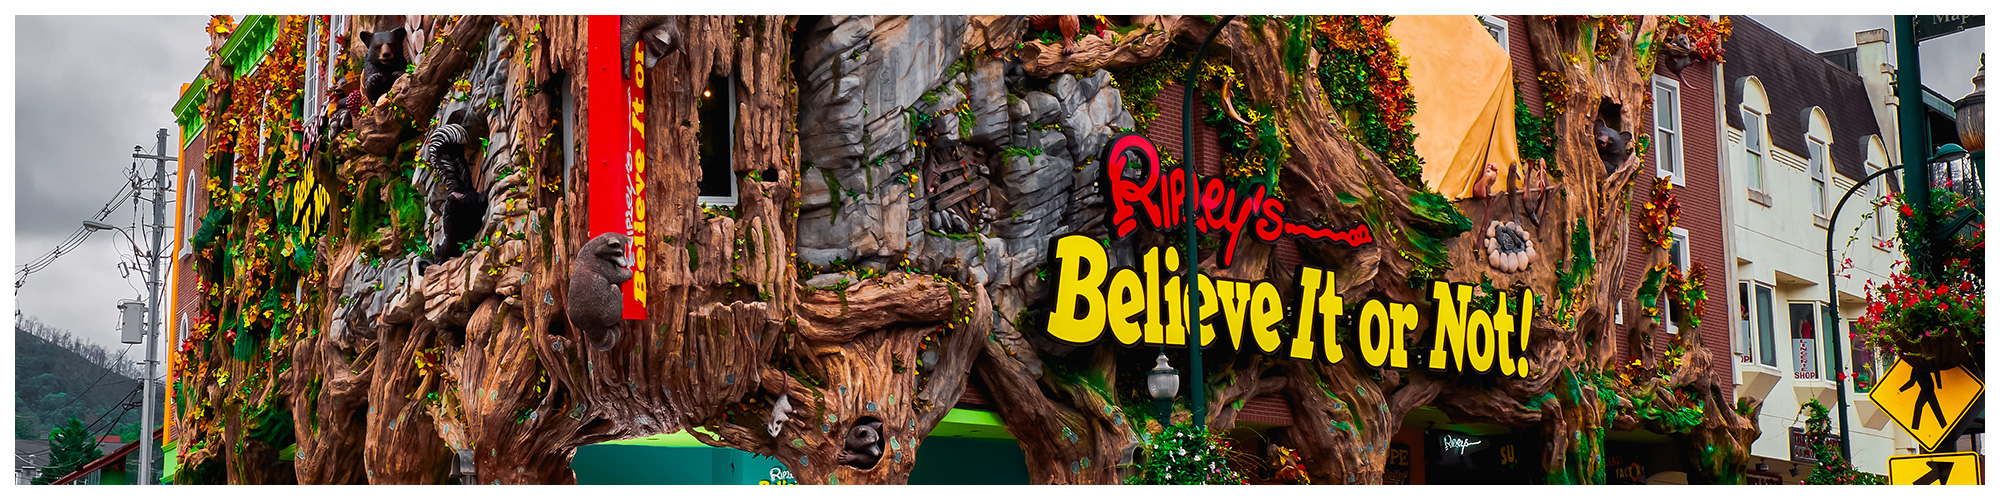 Ripley's Believe It or Not! (Header Background) | Gatlinburg Attractions